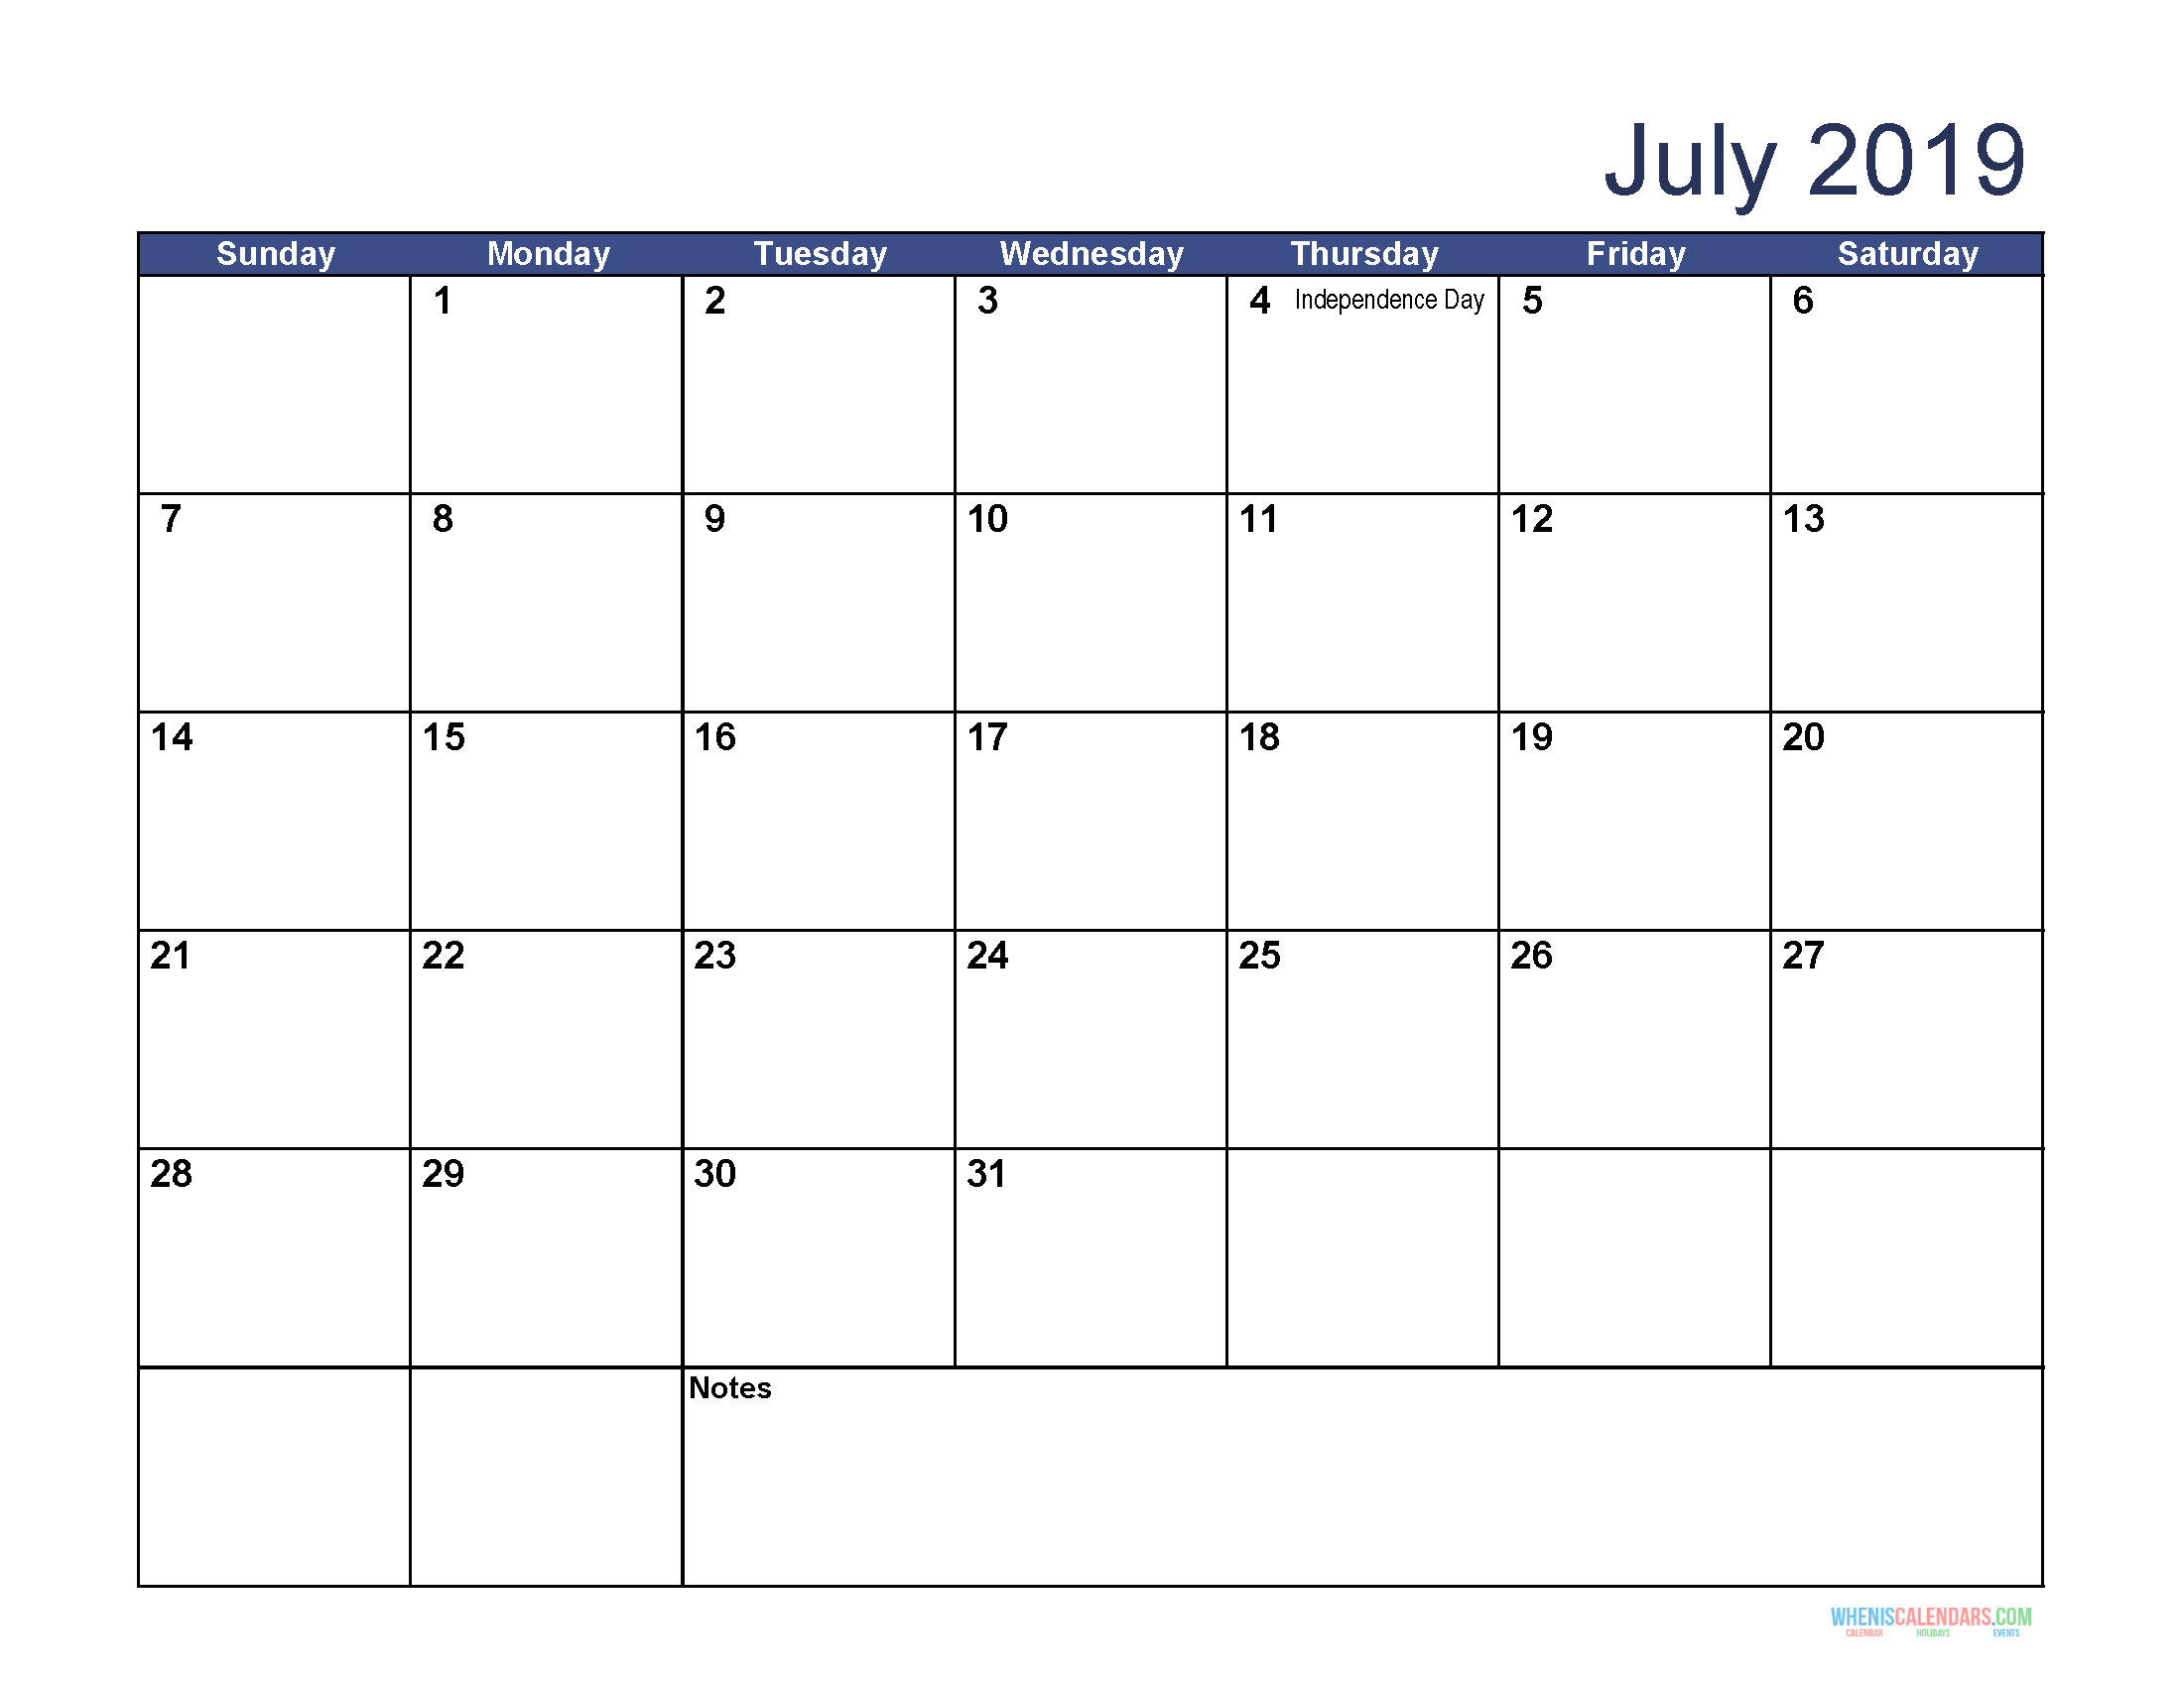 photo regarding Monthly Printable Calendars identify July 2019 Month-to-month Printable Calendar